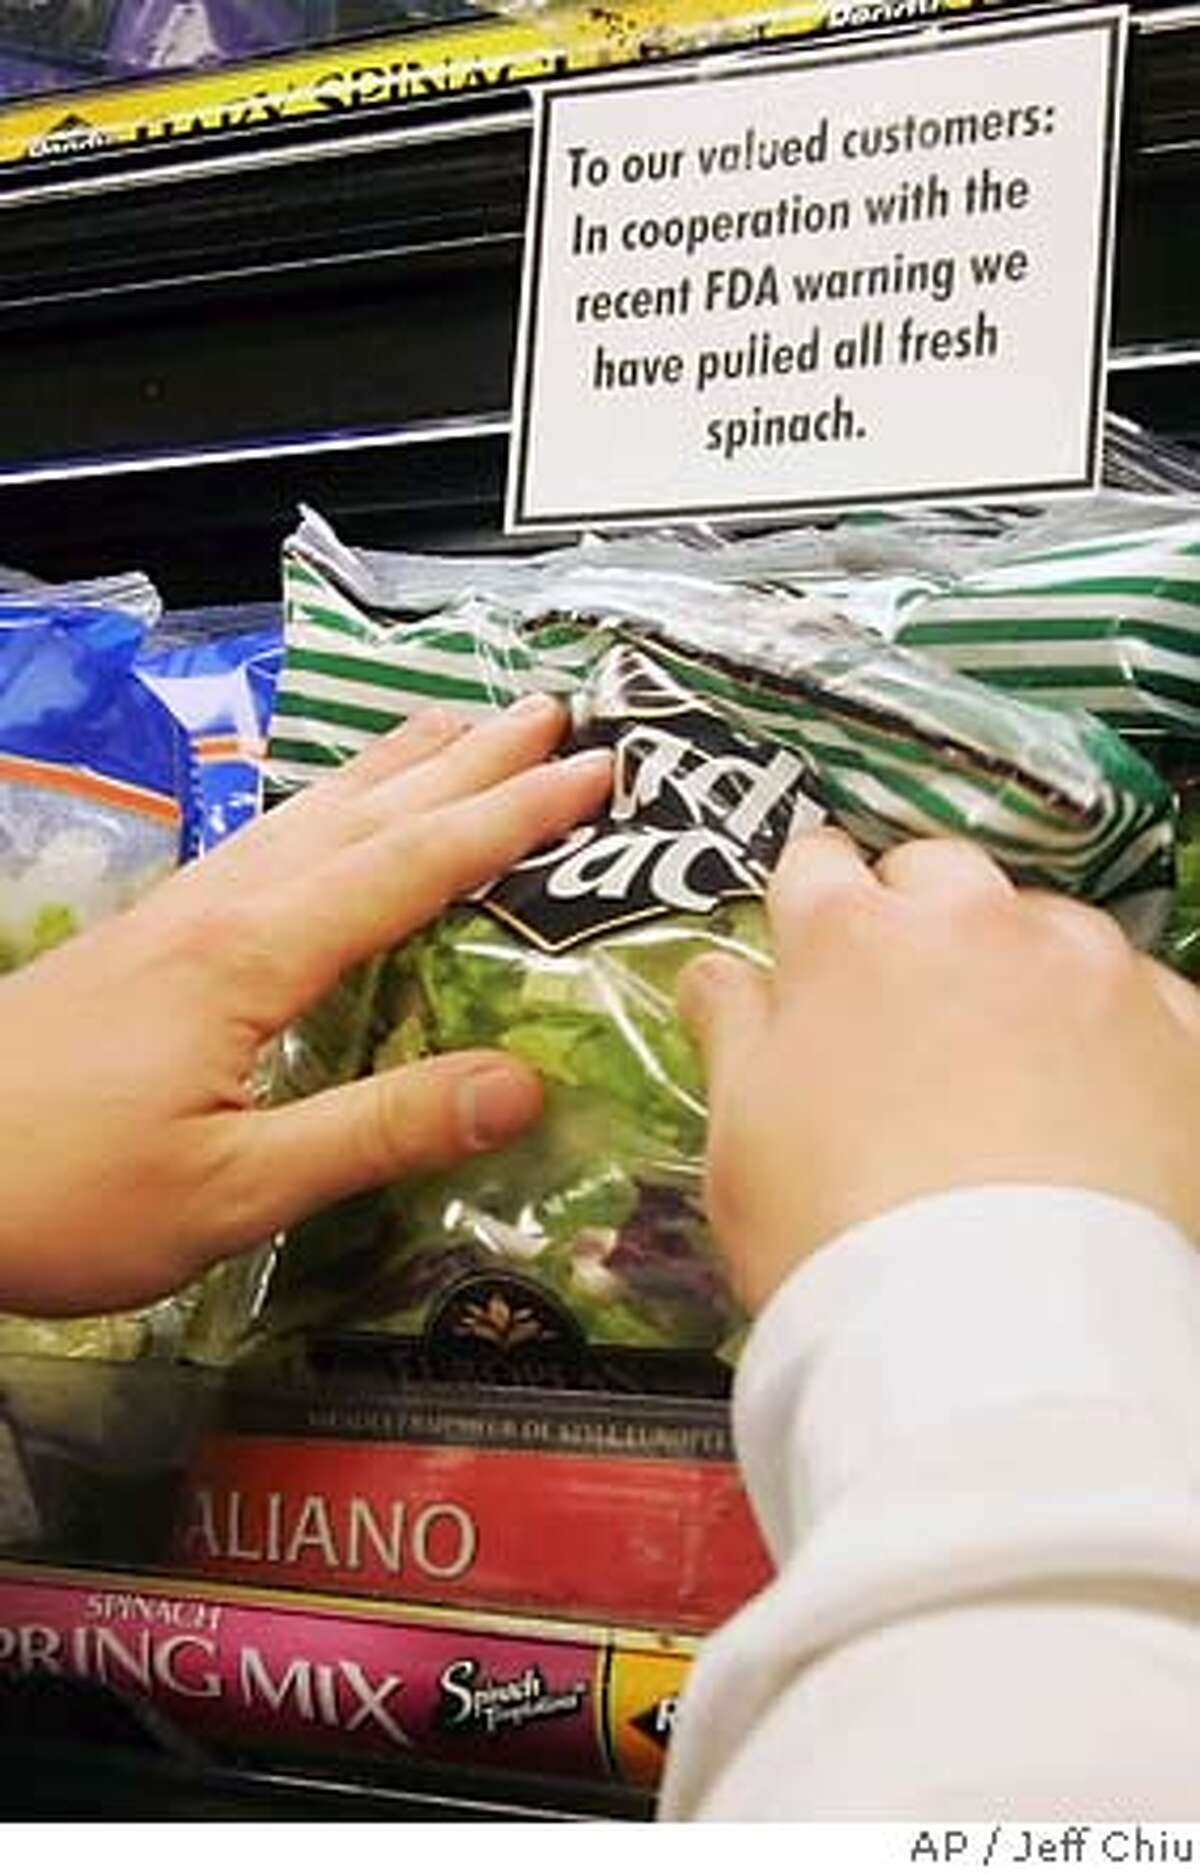 A sign informing customers that fresh spinach has been removed is shown as produce worker Pete Kettell stocks packaged salad mixes at Mollie Stone's Tower Market in San Francisco, Friday, Sept. 15, 2006. With at least one dead and dozens sickened across 10 states, health officials focused on California as the likely source of spinach contaminated by E. coli as grocers cleared the vegetable from their shelves. (AP Photo/Jeff Chiu)